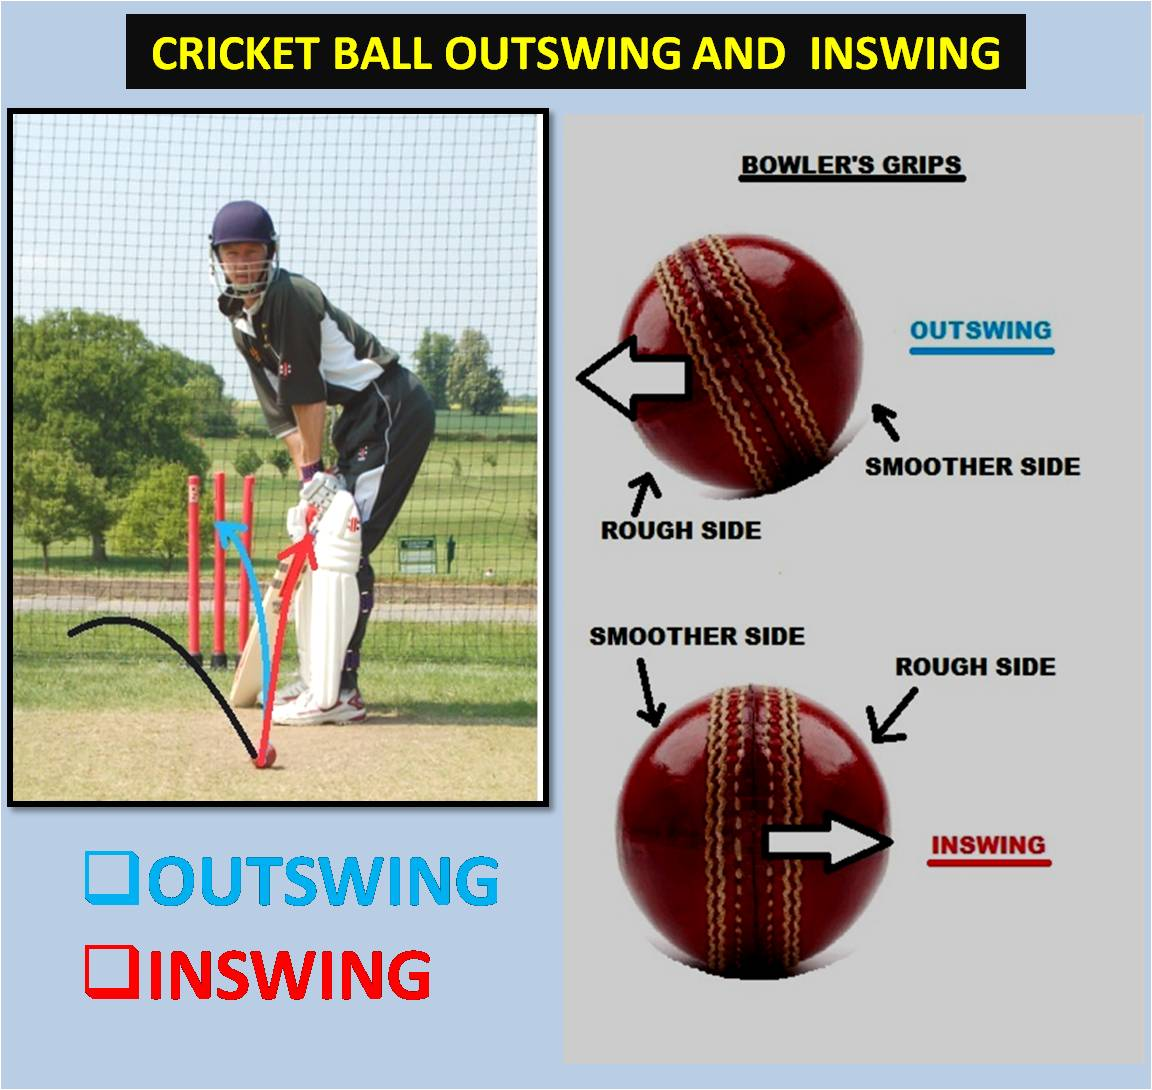 CRICKET BALL OUTSWING AND INSWING_4